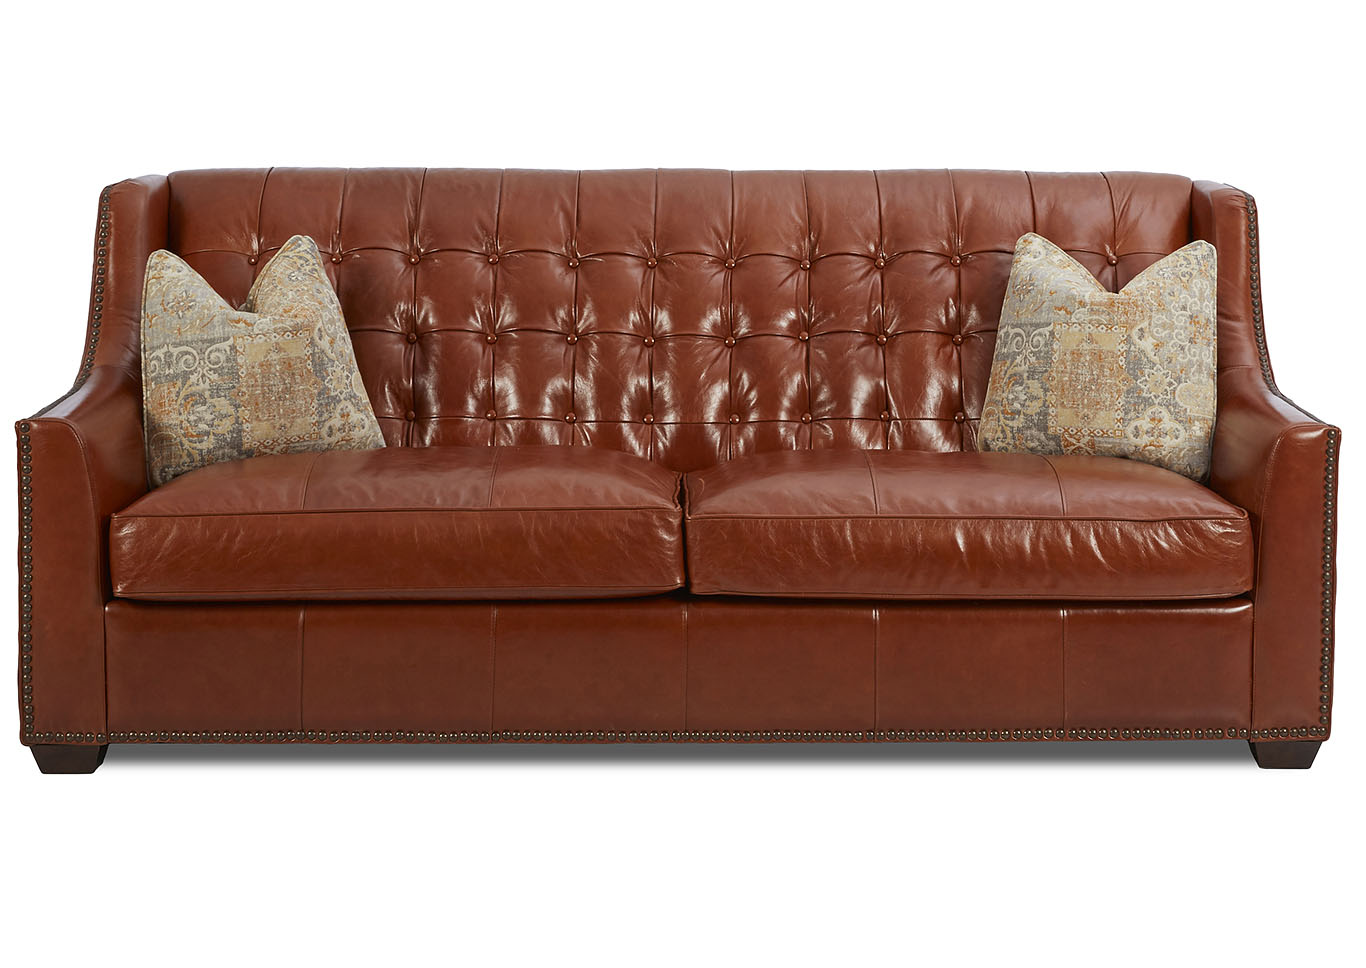 Pennington Brown Leather Stationary Sofa,Klaussner Home Furnishings